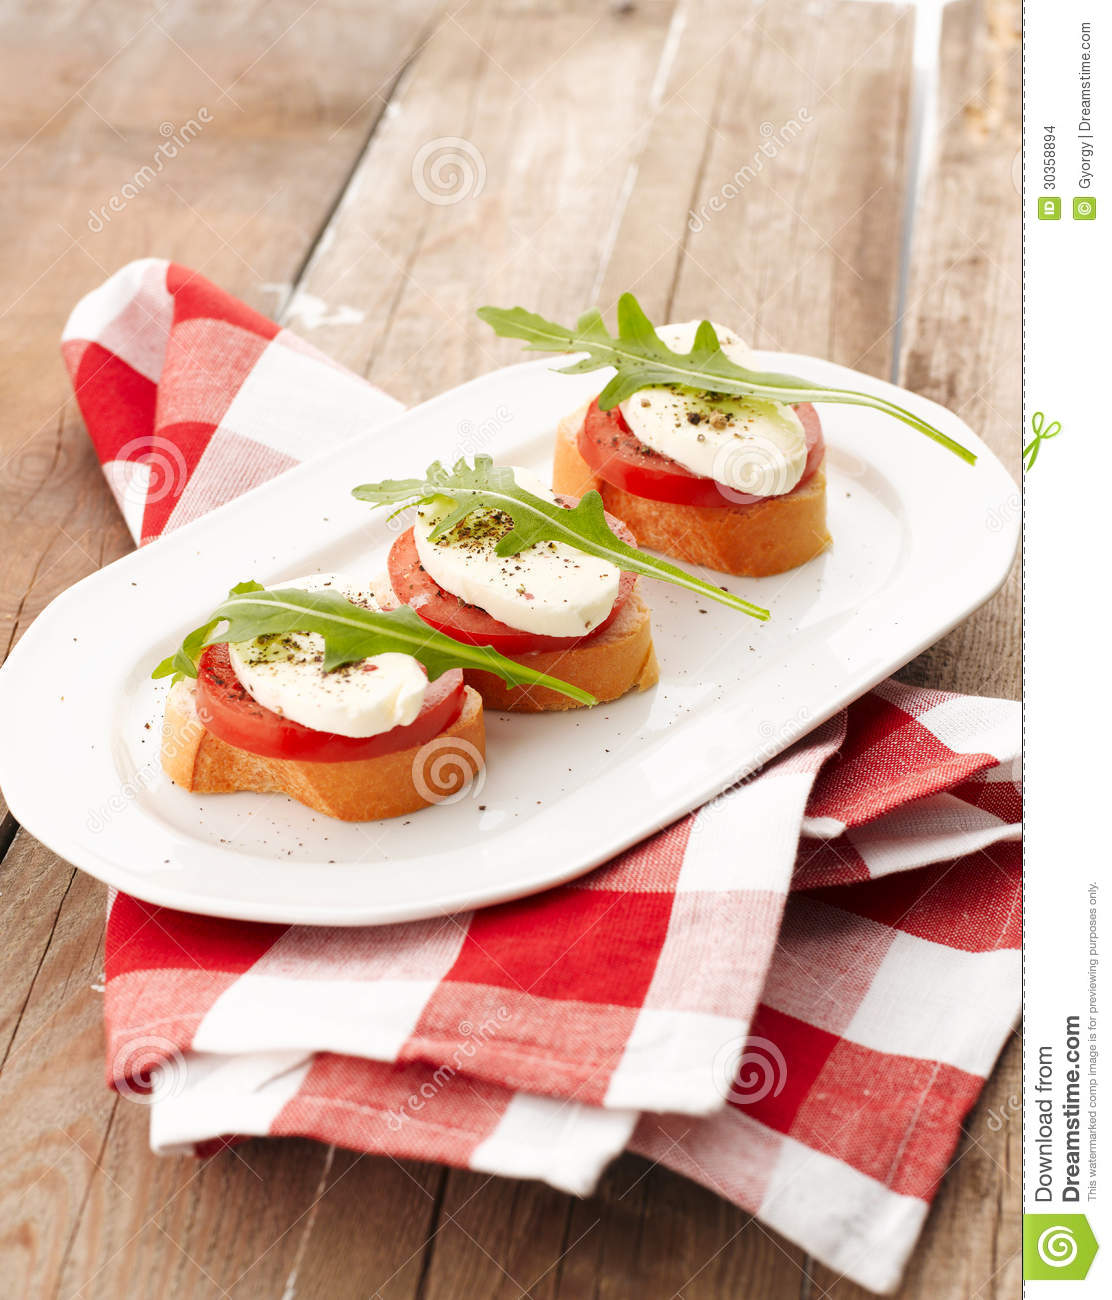 Canapes with tomatoes and mozzarella stock images image for Mozzarella canape